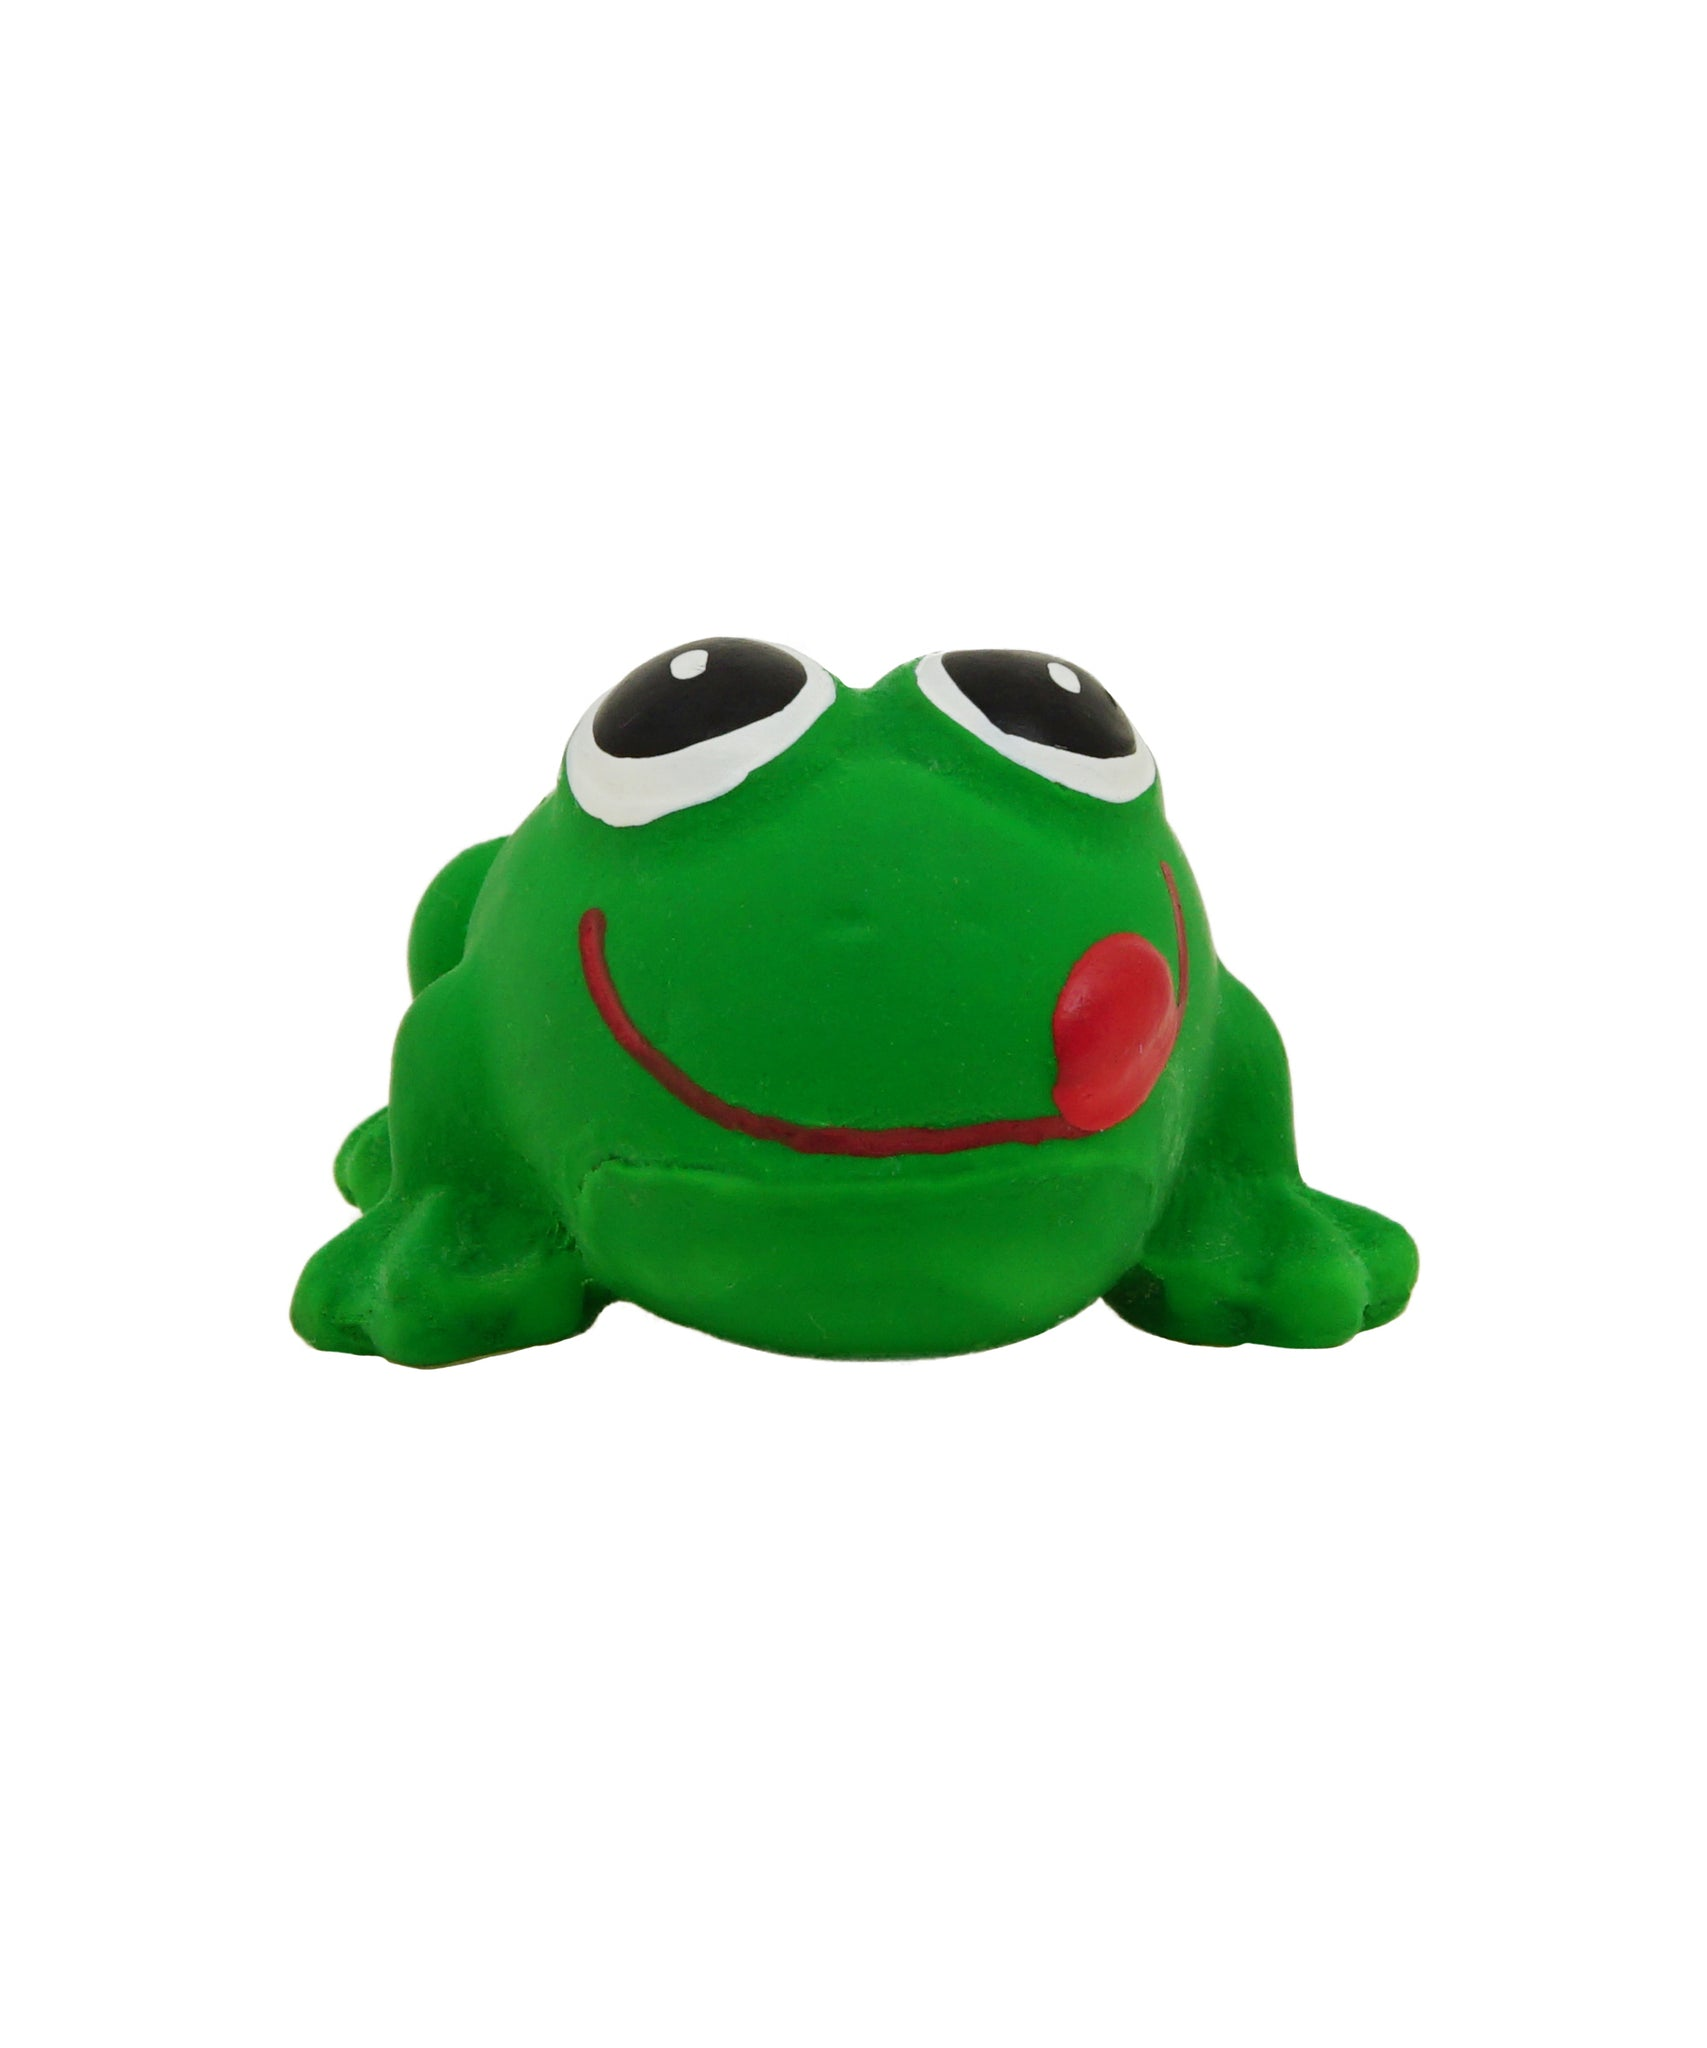 green rubber frog toy for dogs 2.5